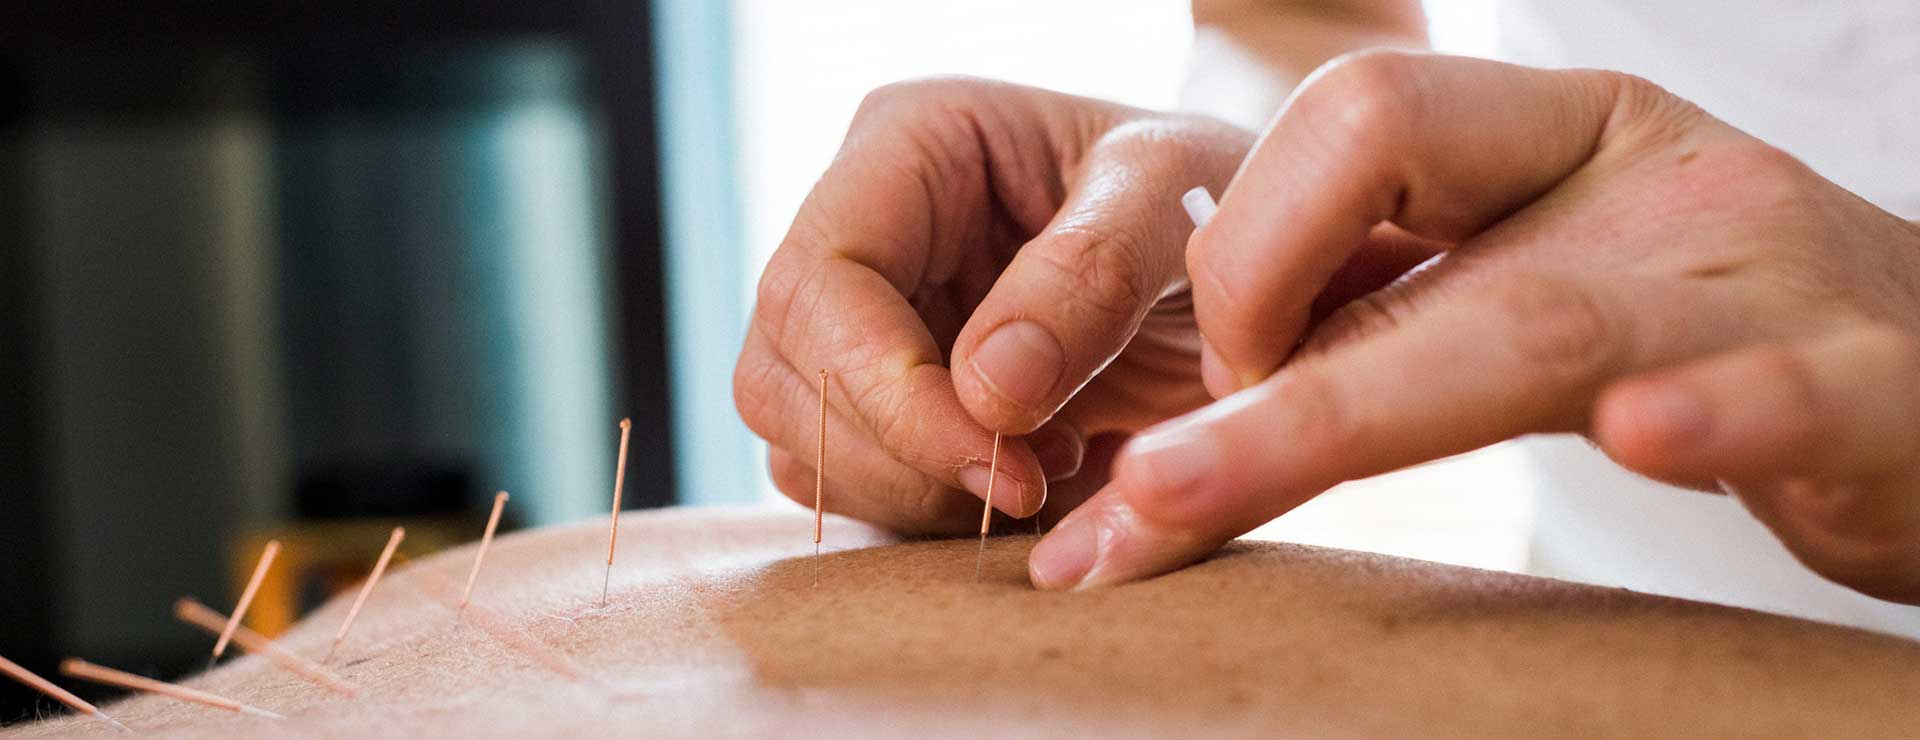 A practitioner performs acupuncture.